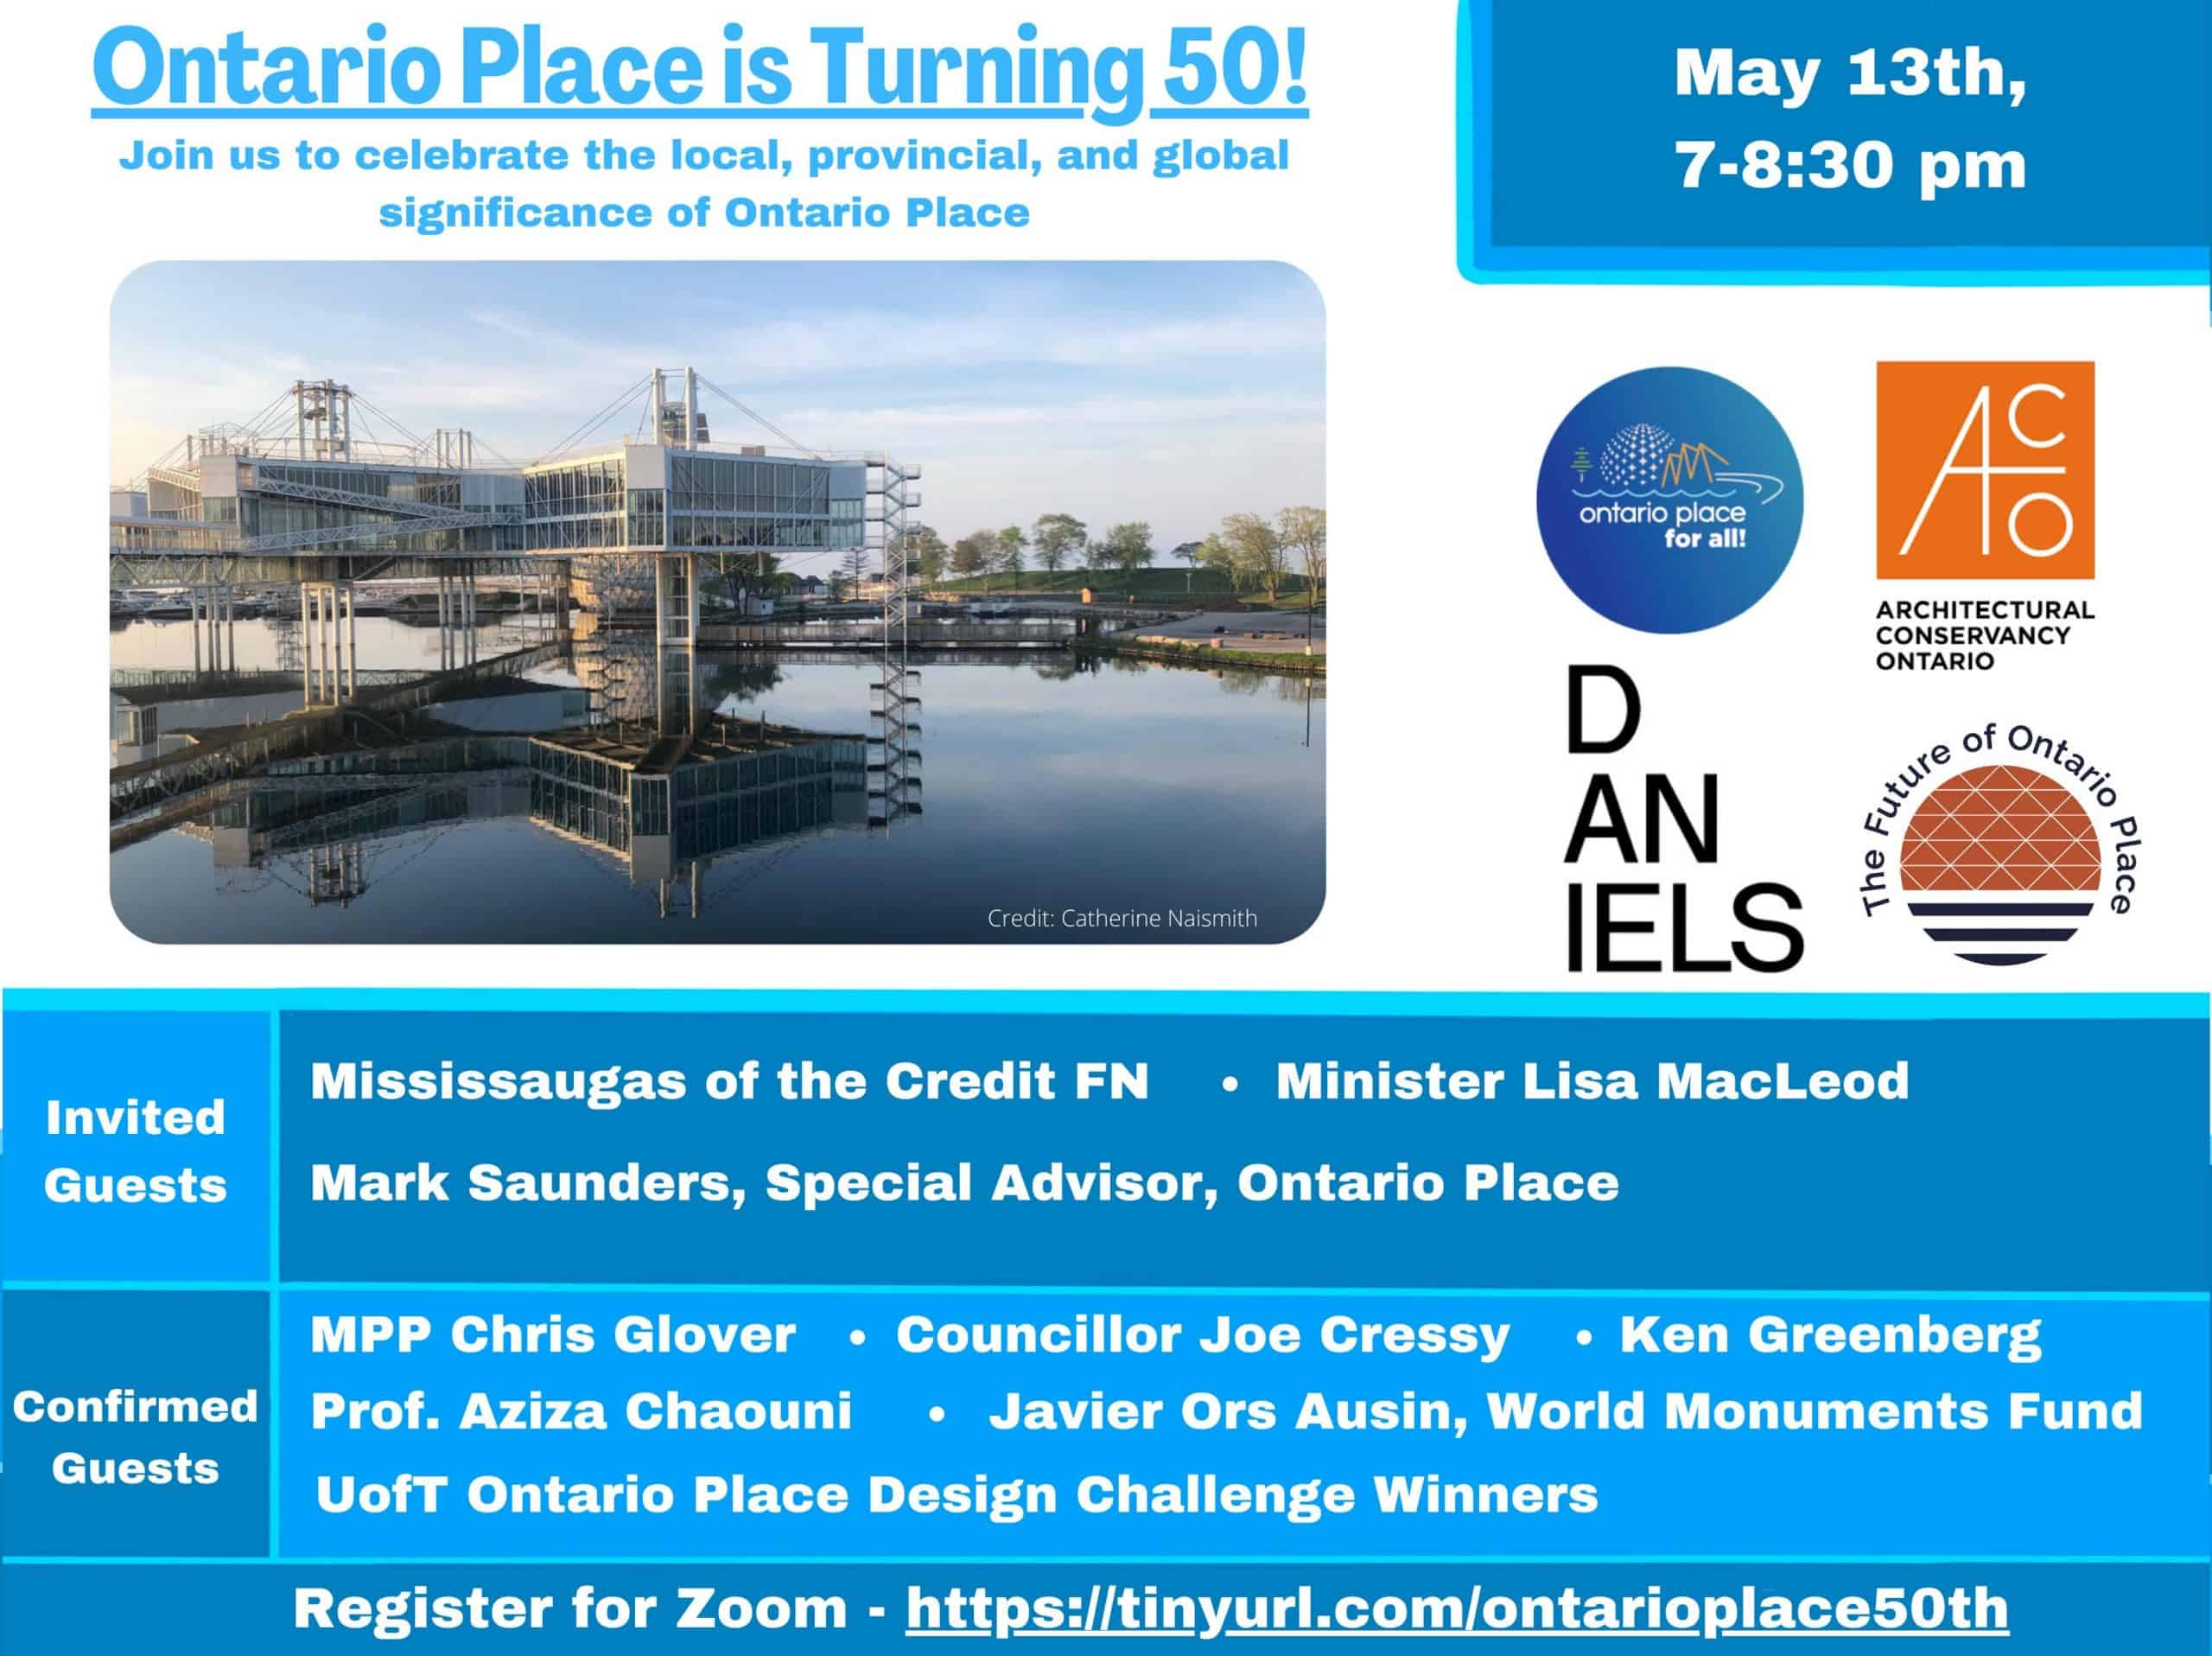 Ontario Place is turning 50